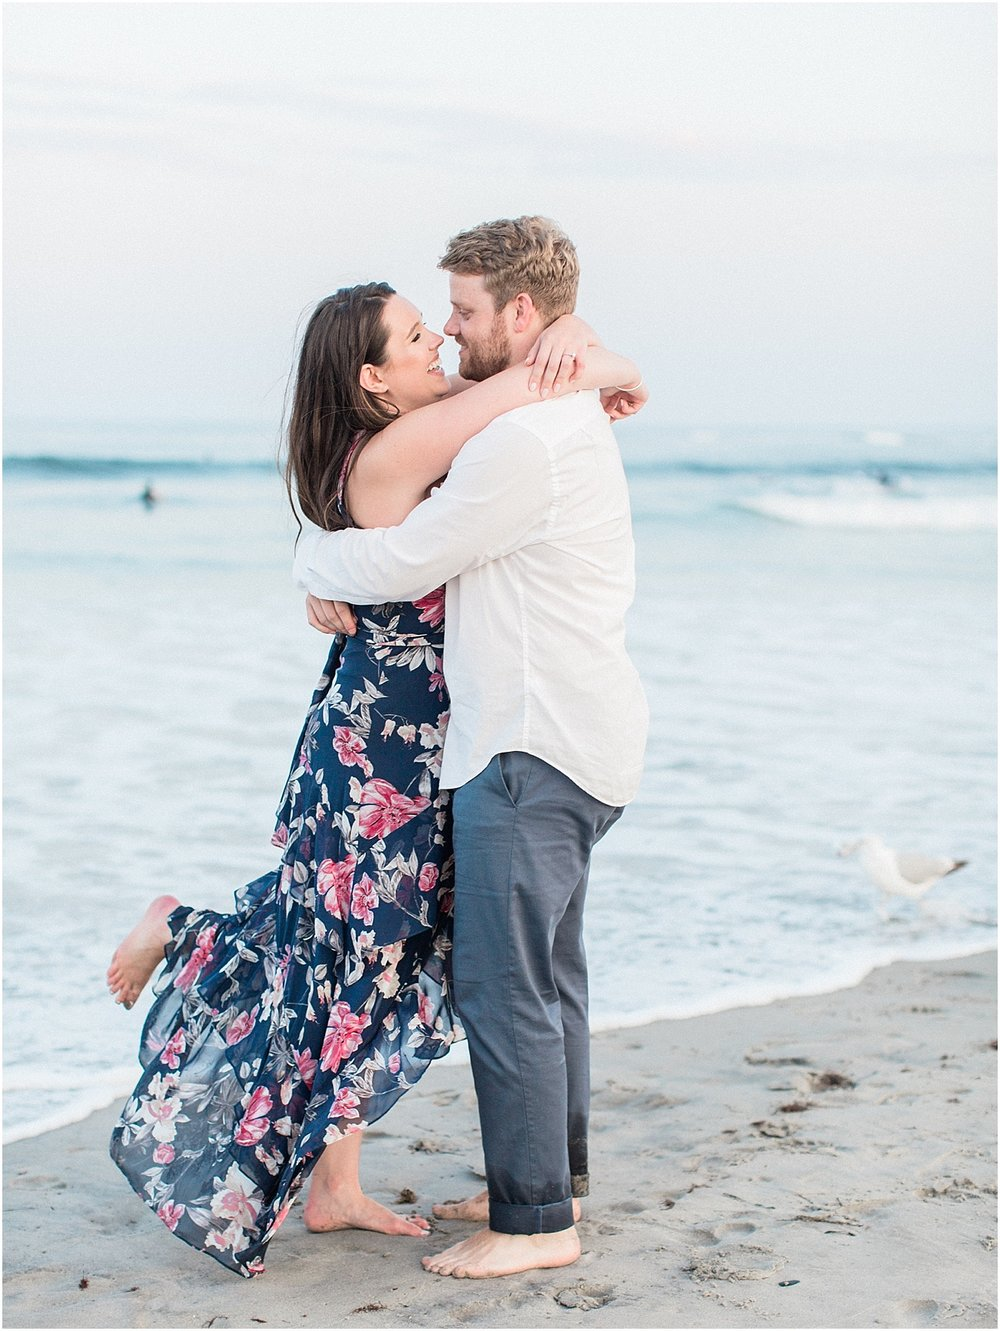 heather_chris_narragansett_beer_cliff_walk_beach_rhode_island_ri_cape_cod_boston_wedding_photographer_meredith_jane_photography_photo_0751.jpg